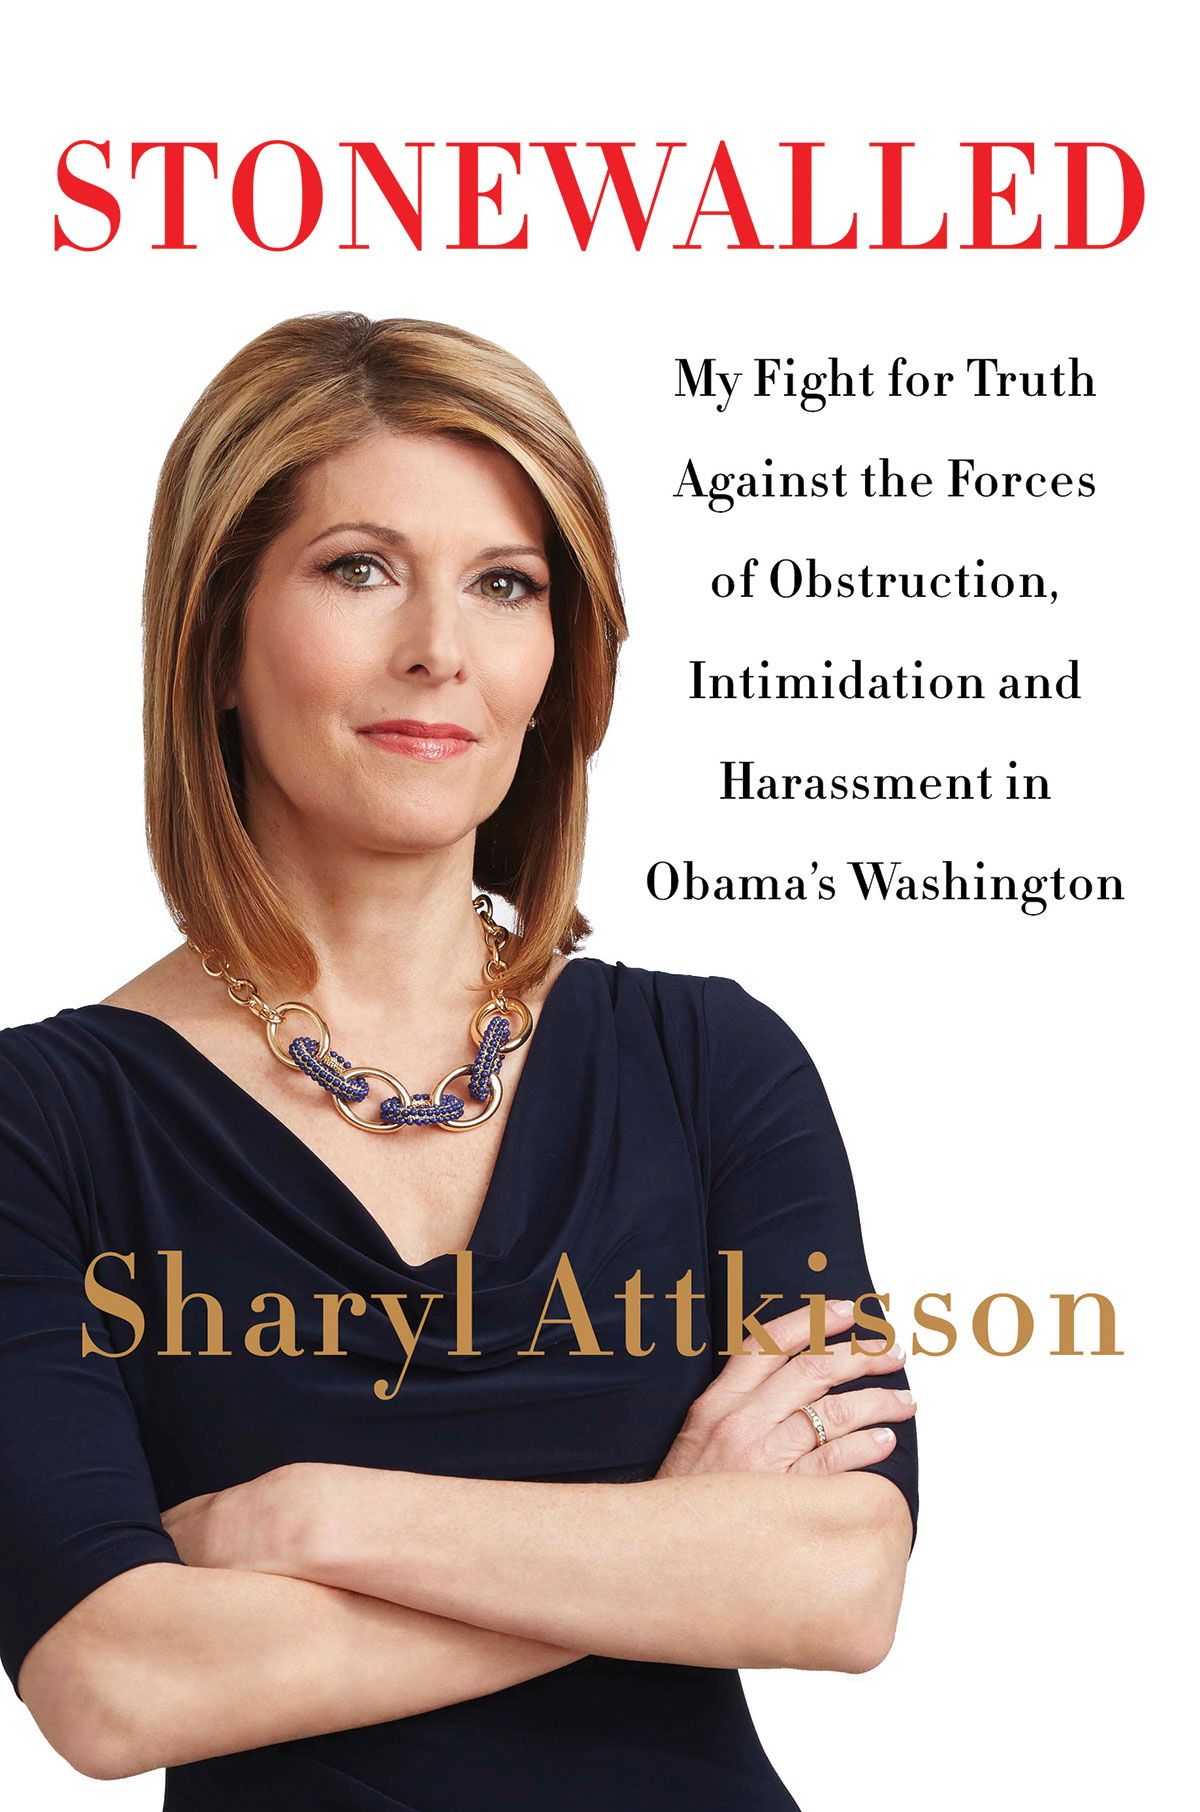 Stonewalled: My Fight for Truth Against the Forces of Obstruction, Intimidation and Harassment in Obama's Washington